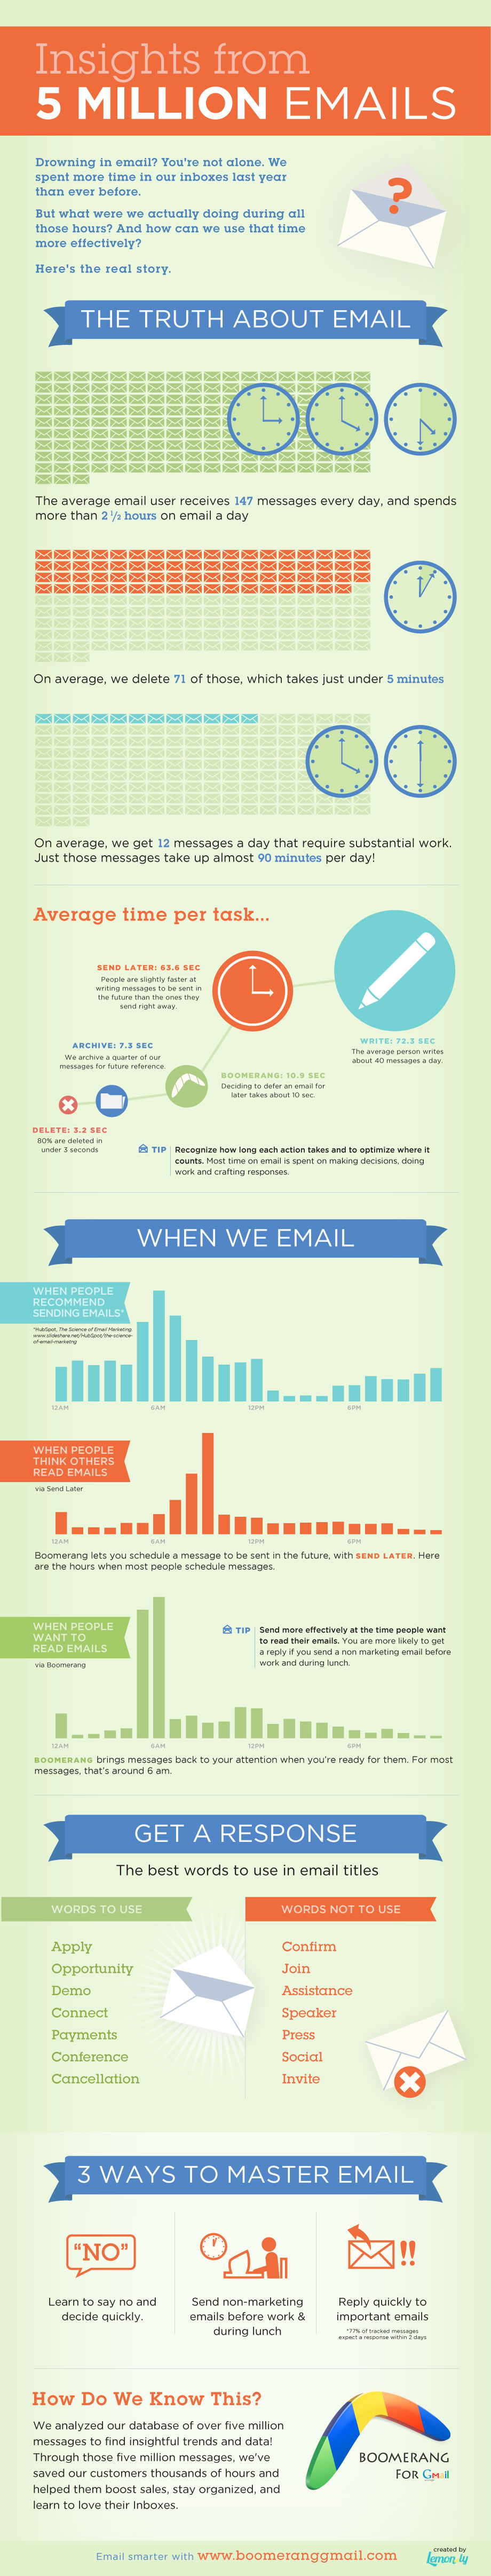 insights-5million-emails